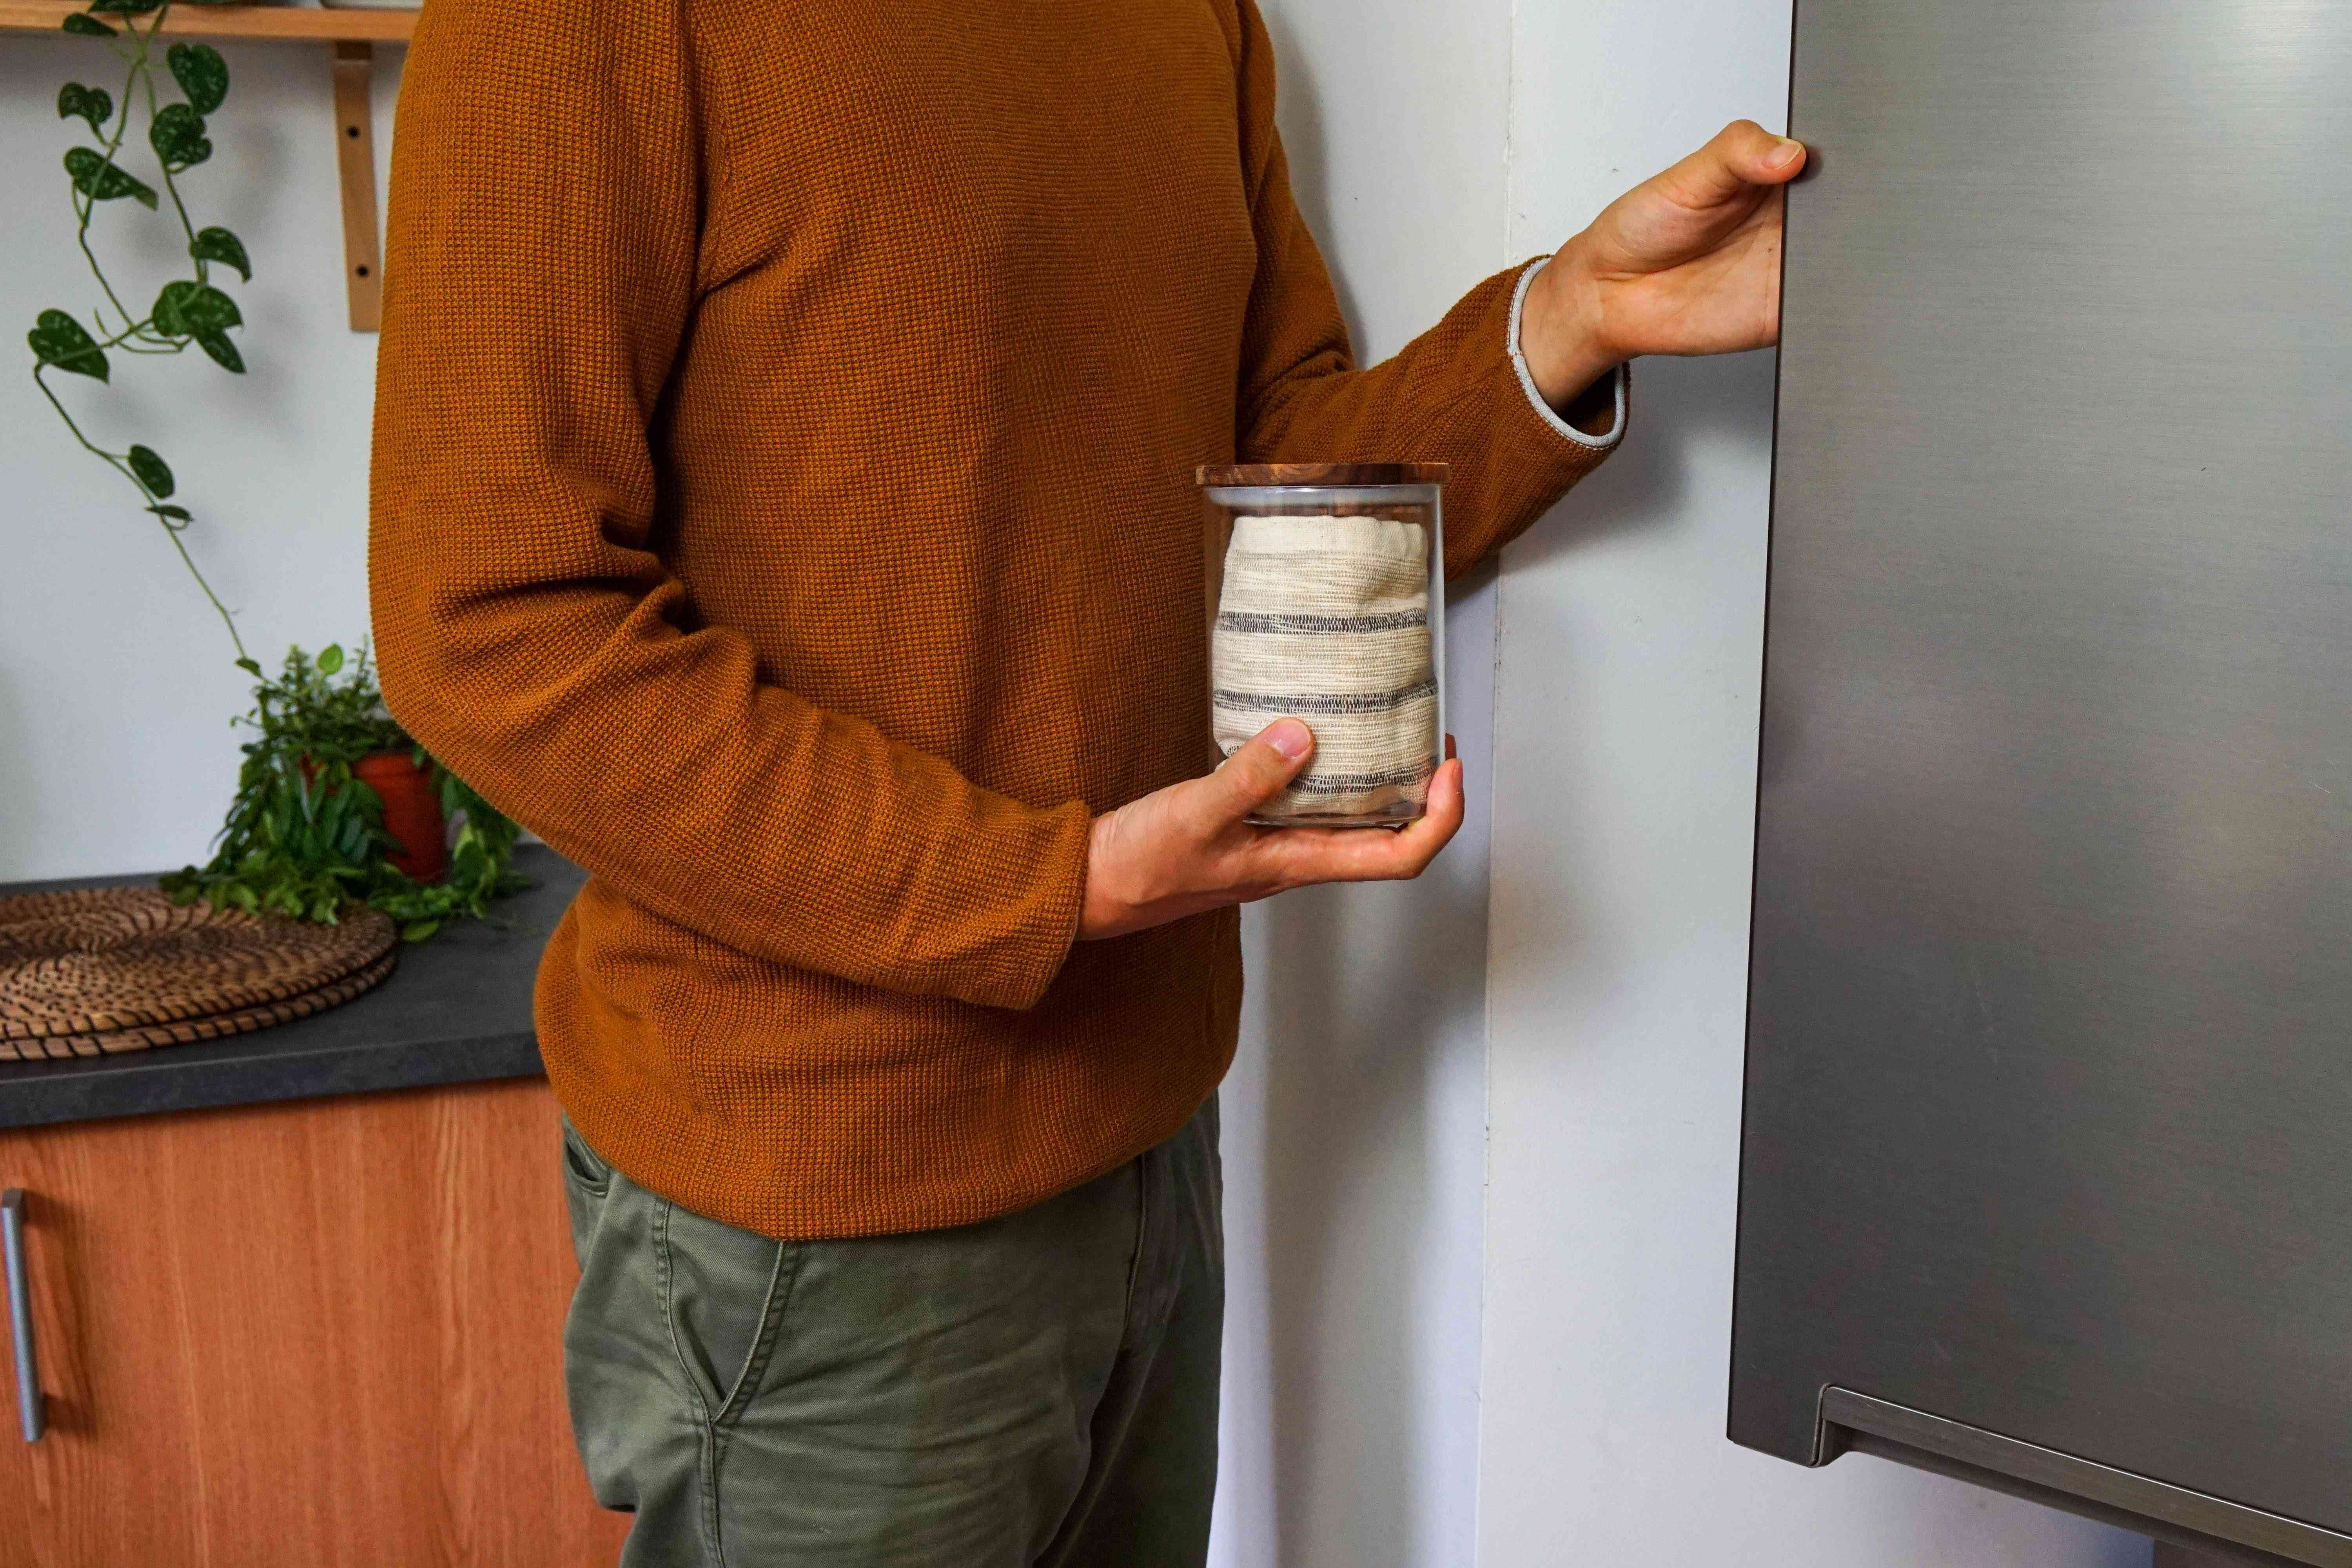 guy in rust-colored shirt places air-tight glass container full of fresh parsley in fridge